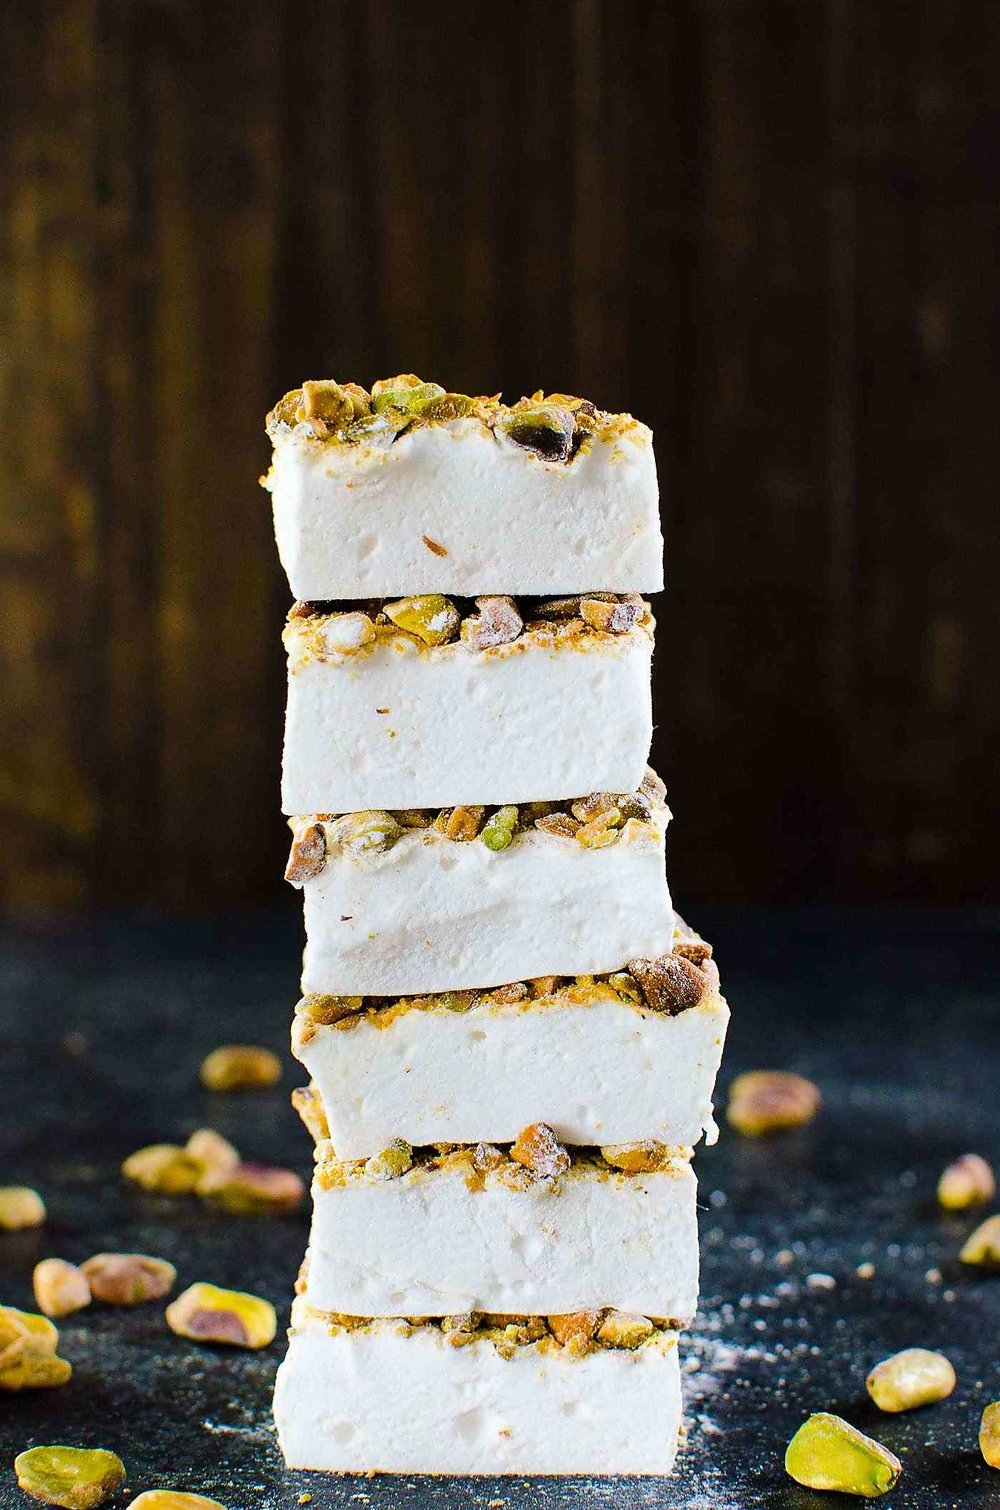 Orange Blossom Marshmallows with Pistachios